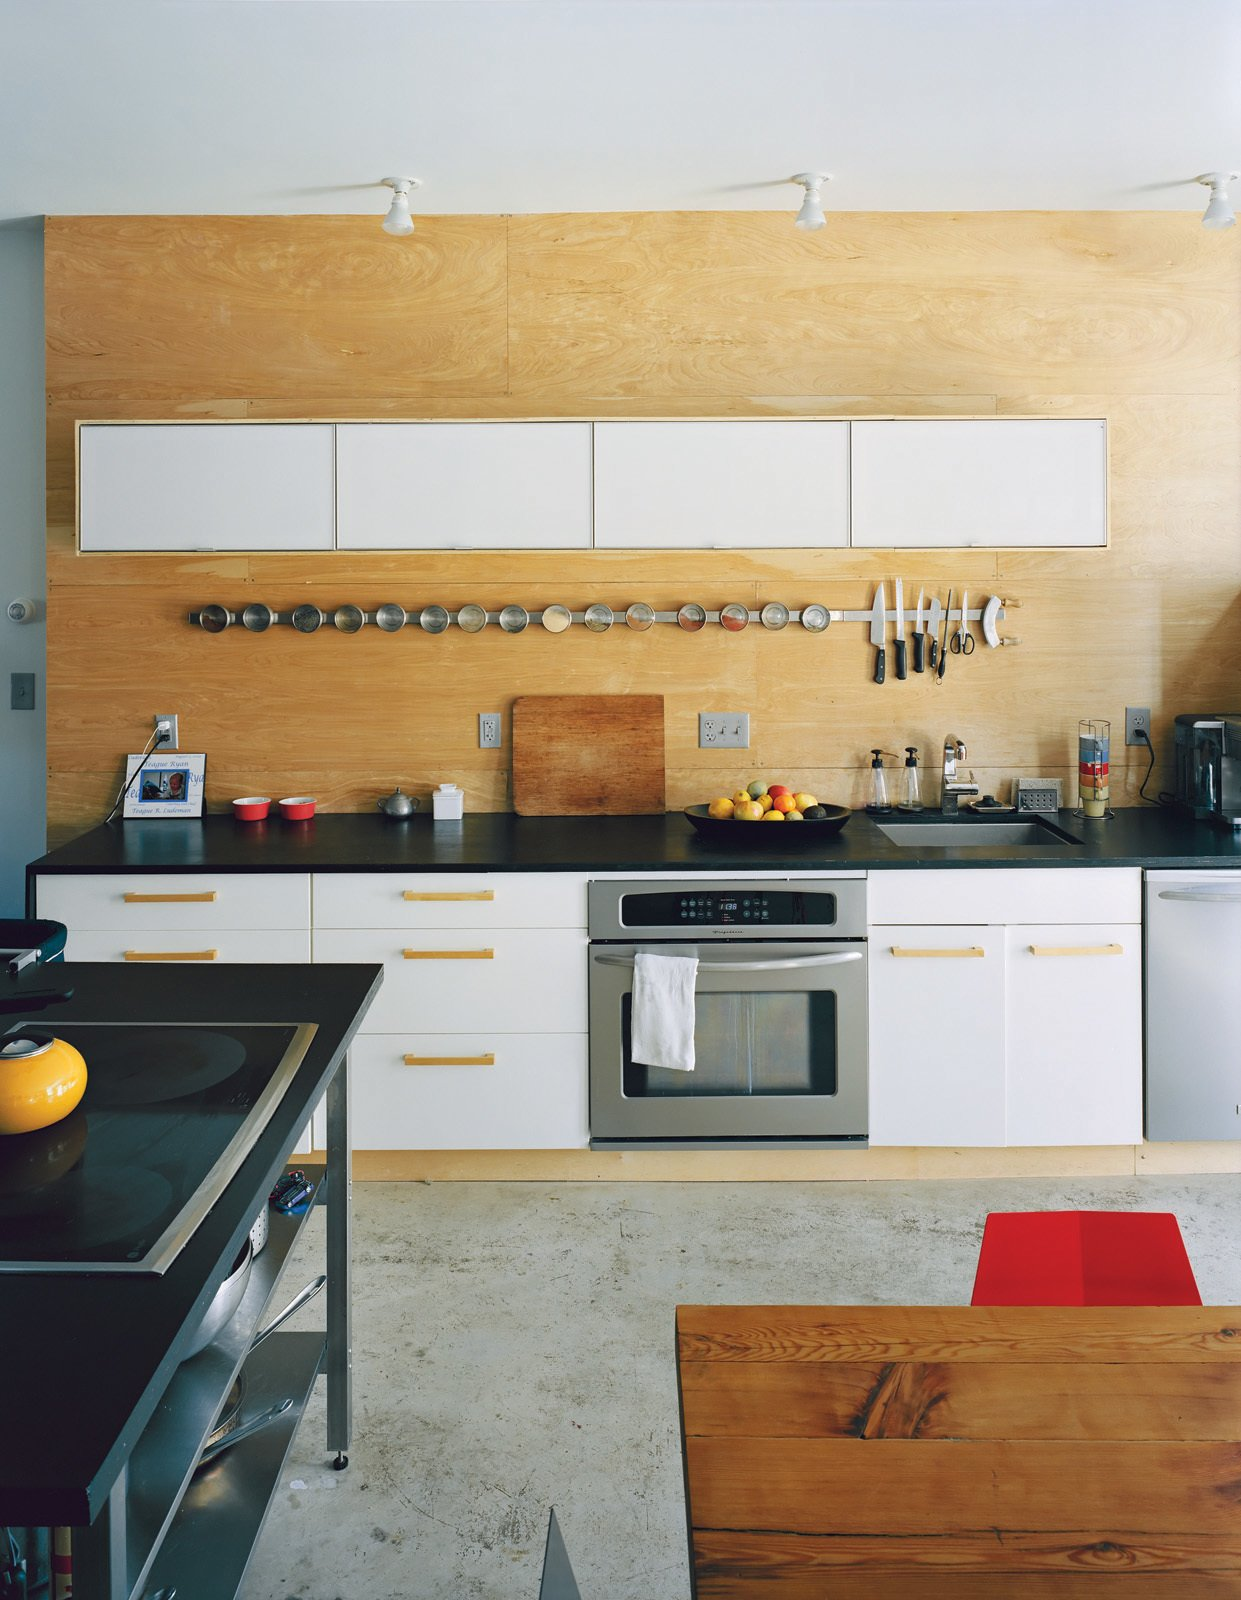 Concrete floors and an Ikea kitchen and spice rack make for an affordable, cleanly geometric aesthetic at the back of the bottom floor. The appliances are by Frigidaire, and the black countertops are sealed with Eco Tuff by Eco Procote. Green Urban Housing in Philadelphia - Photo 3 of 11